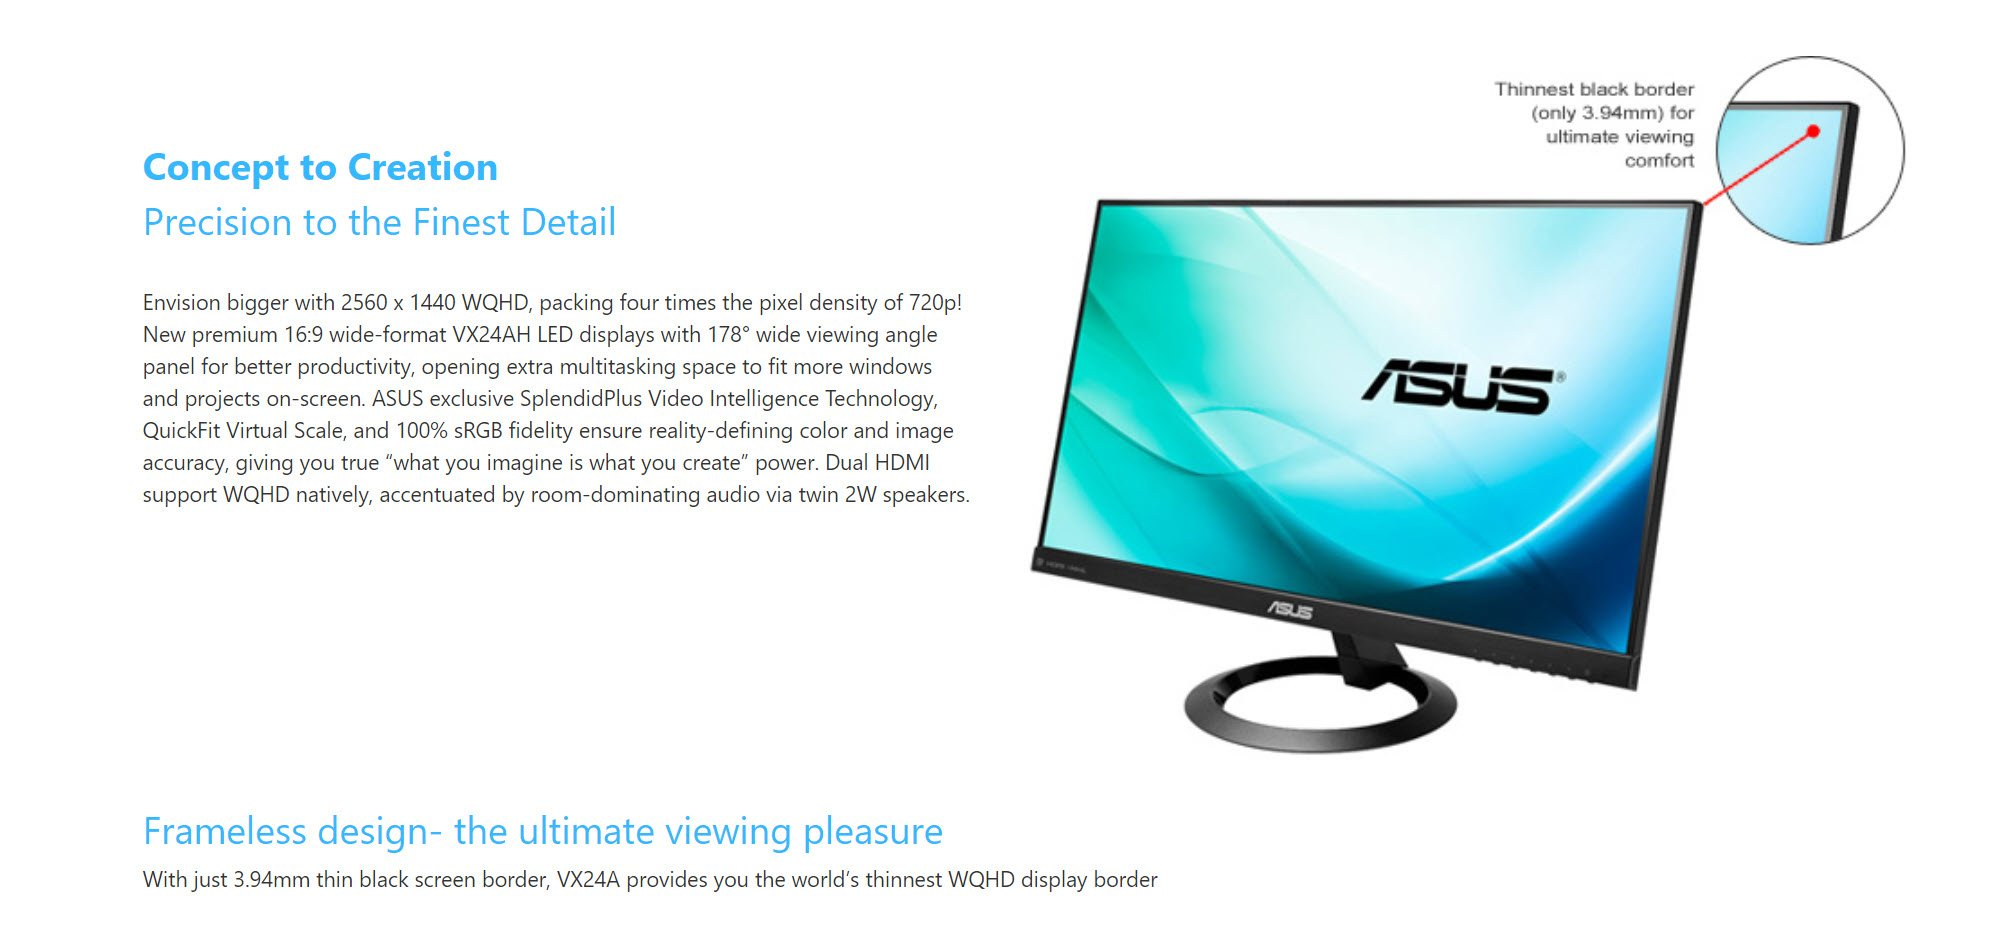 "Asus VX24AH 24"" Frameless Design with WQHD Resolution 16:9 2560 x 1440 WQHD LED-backlit Monitor – New"